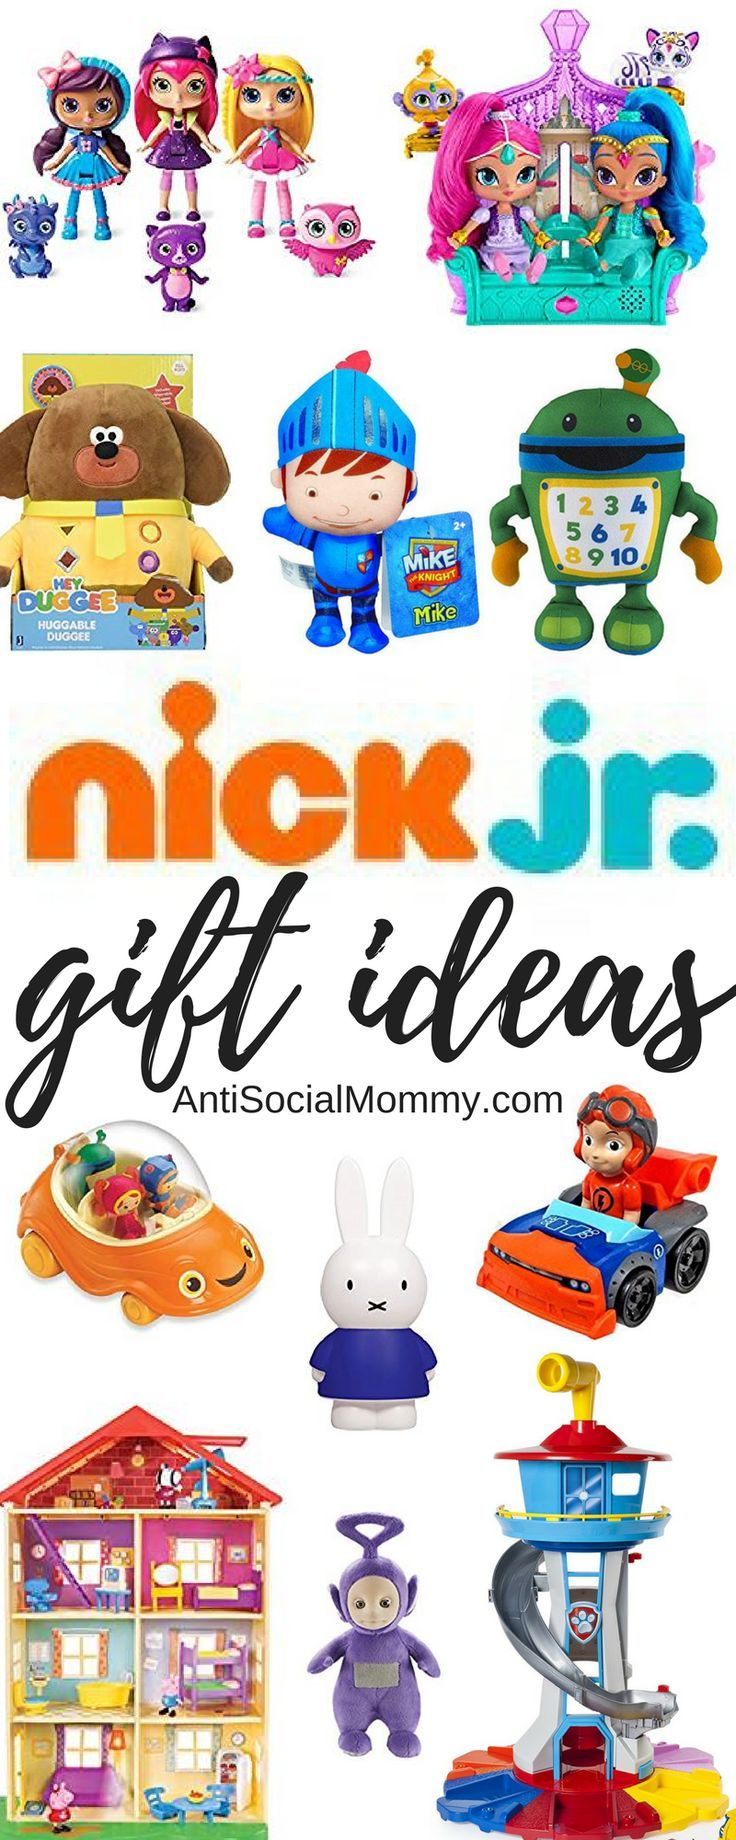 Nick Jr gift guide for paw patrol toys, peppa pig toys, and all nick jr's shows.